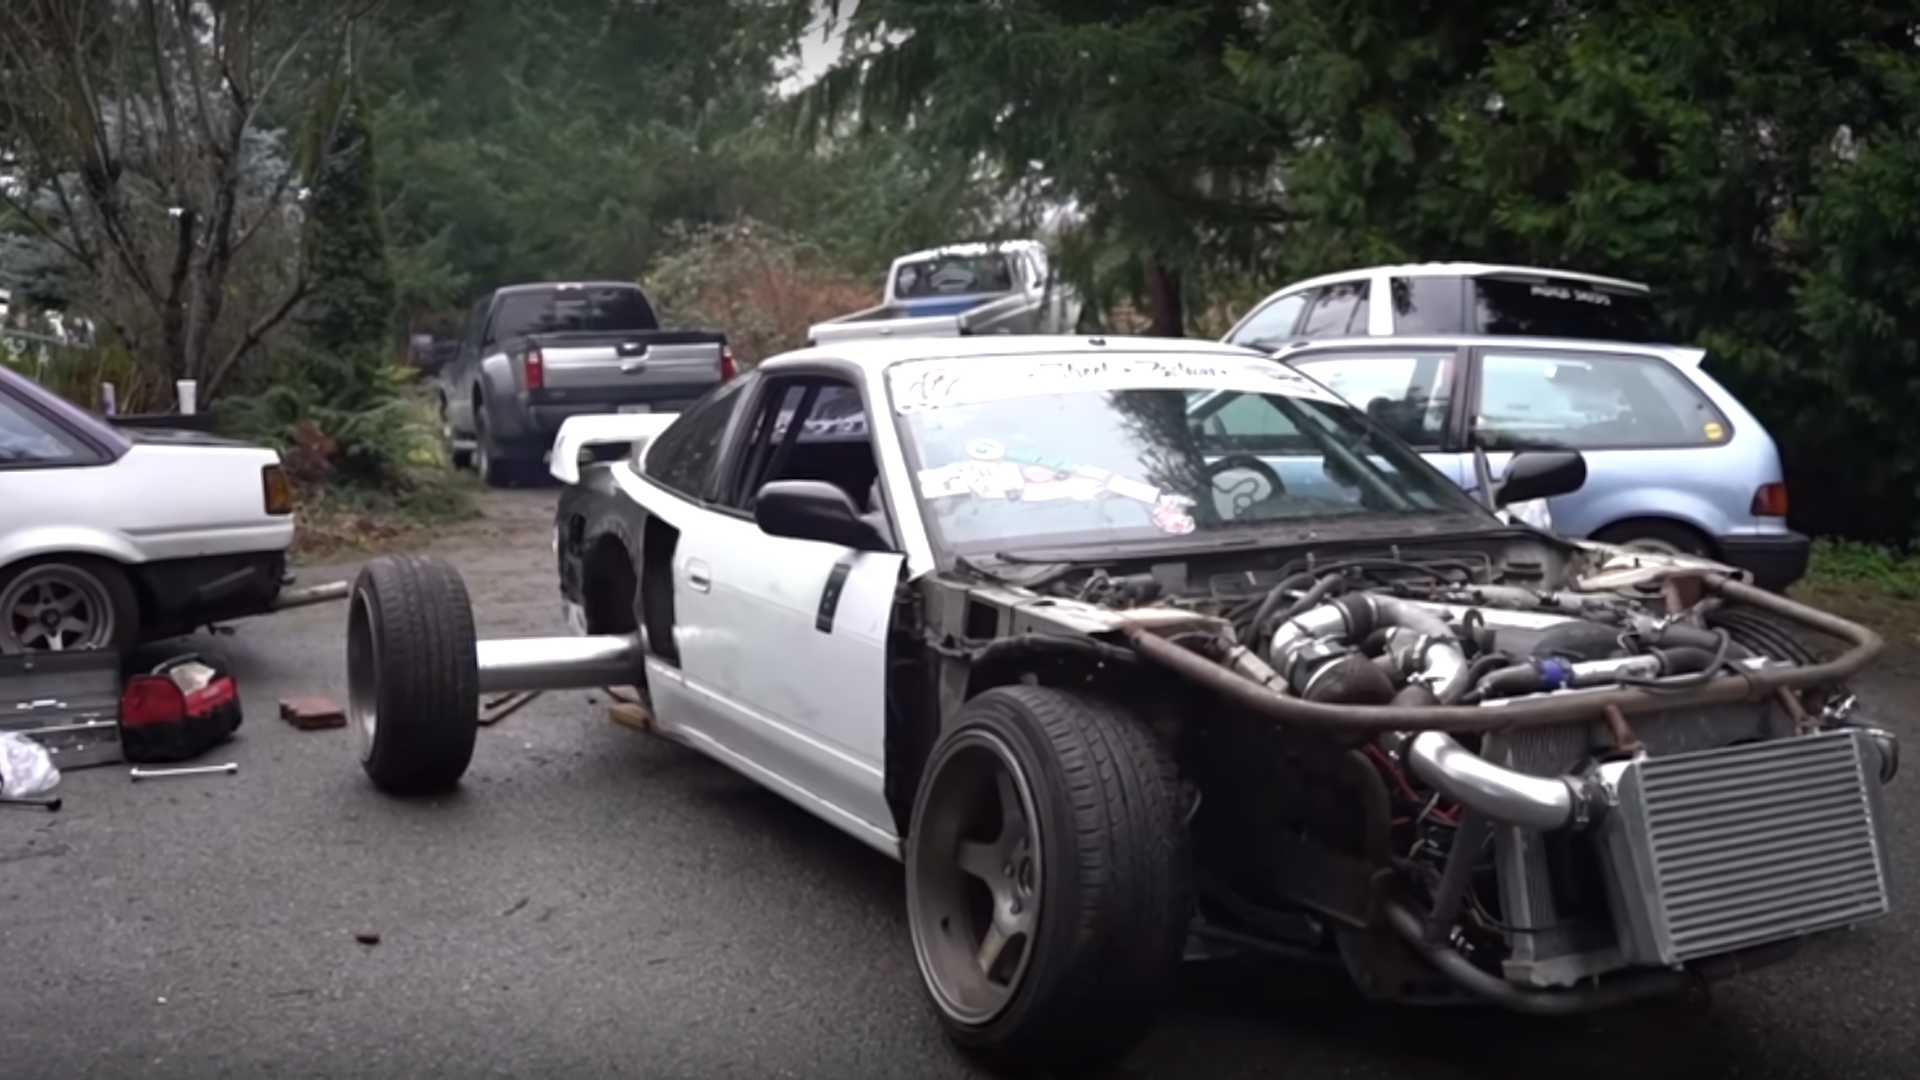 how many wheel spacers can you fit on a nissan 240sx?